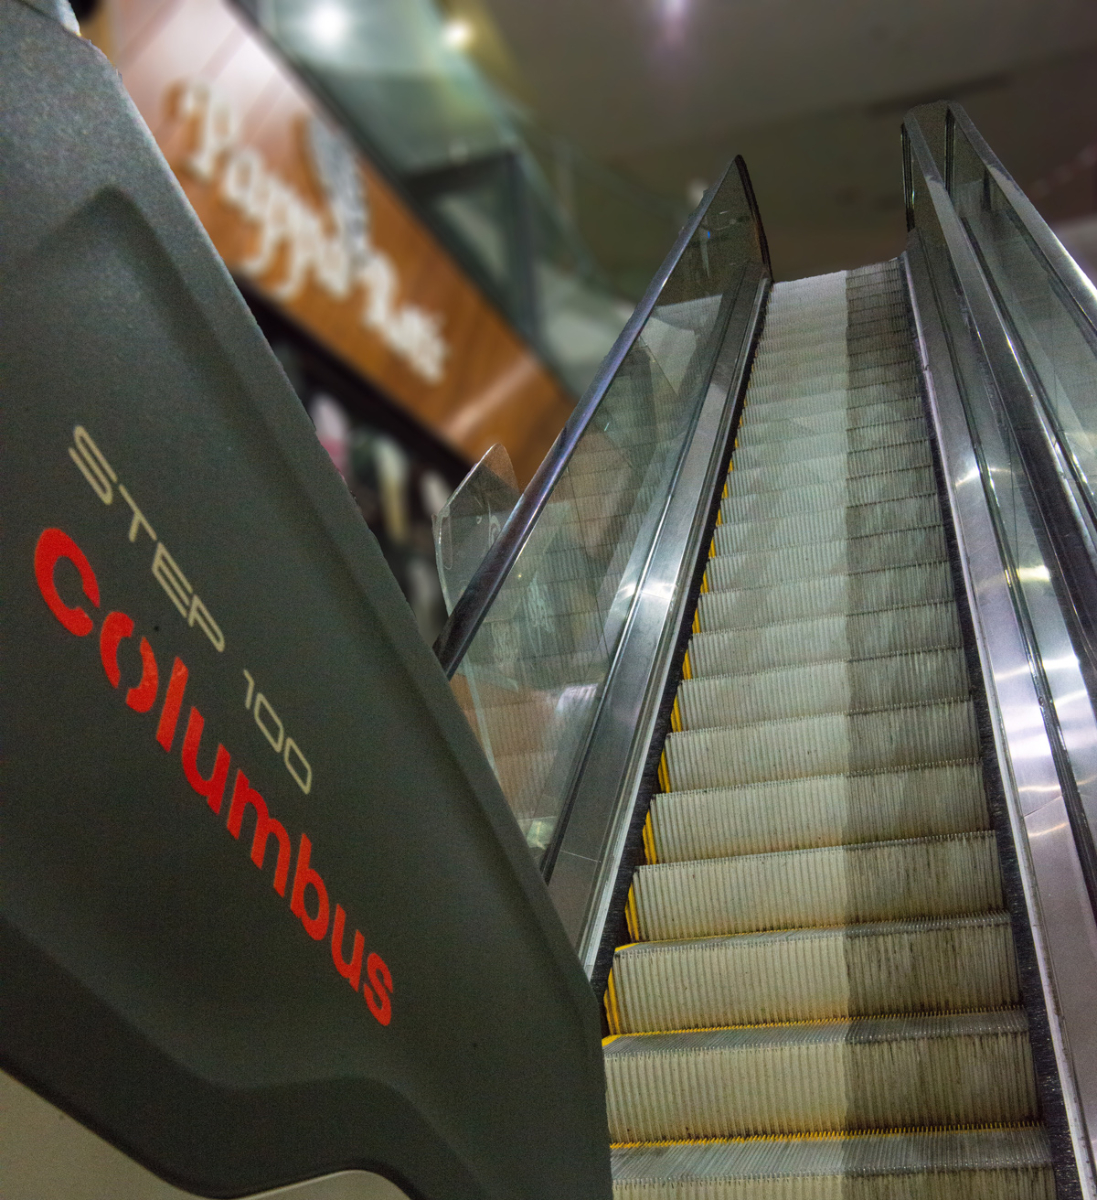 Step-100-Columbus-Escalator-Cleaner-Clearchoice-Products-21